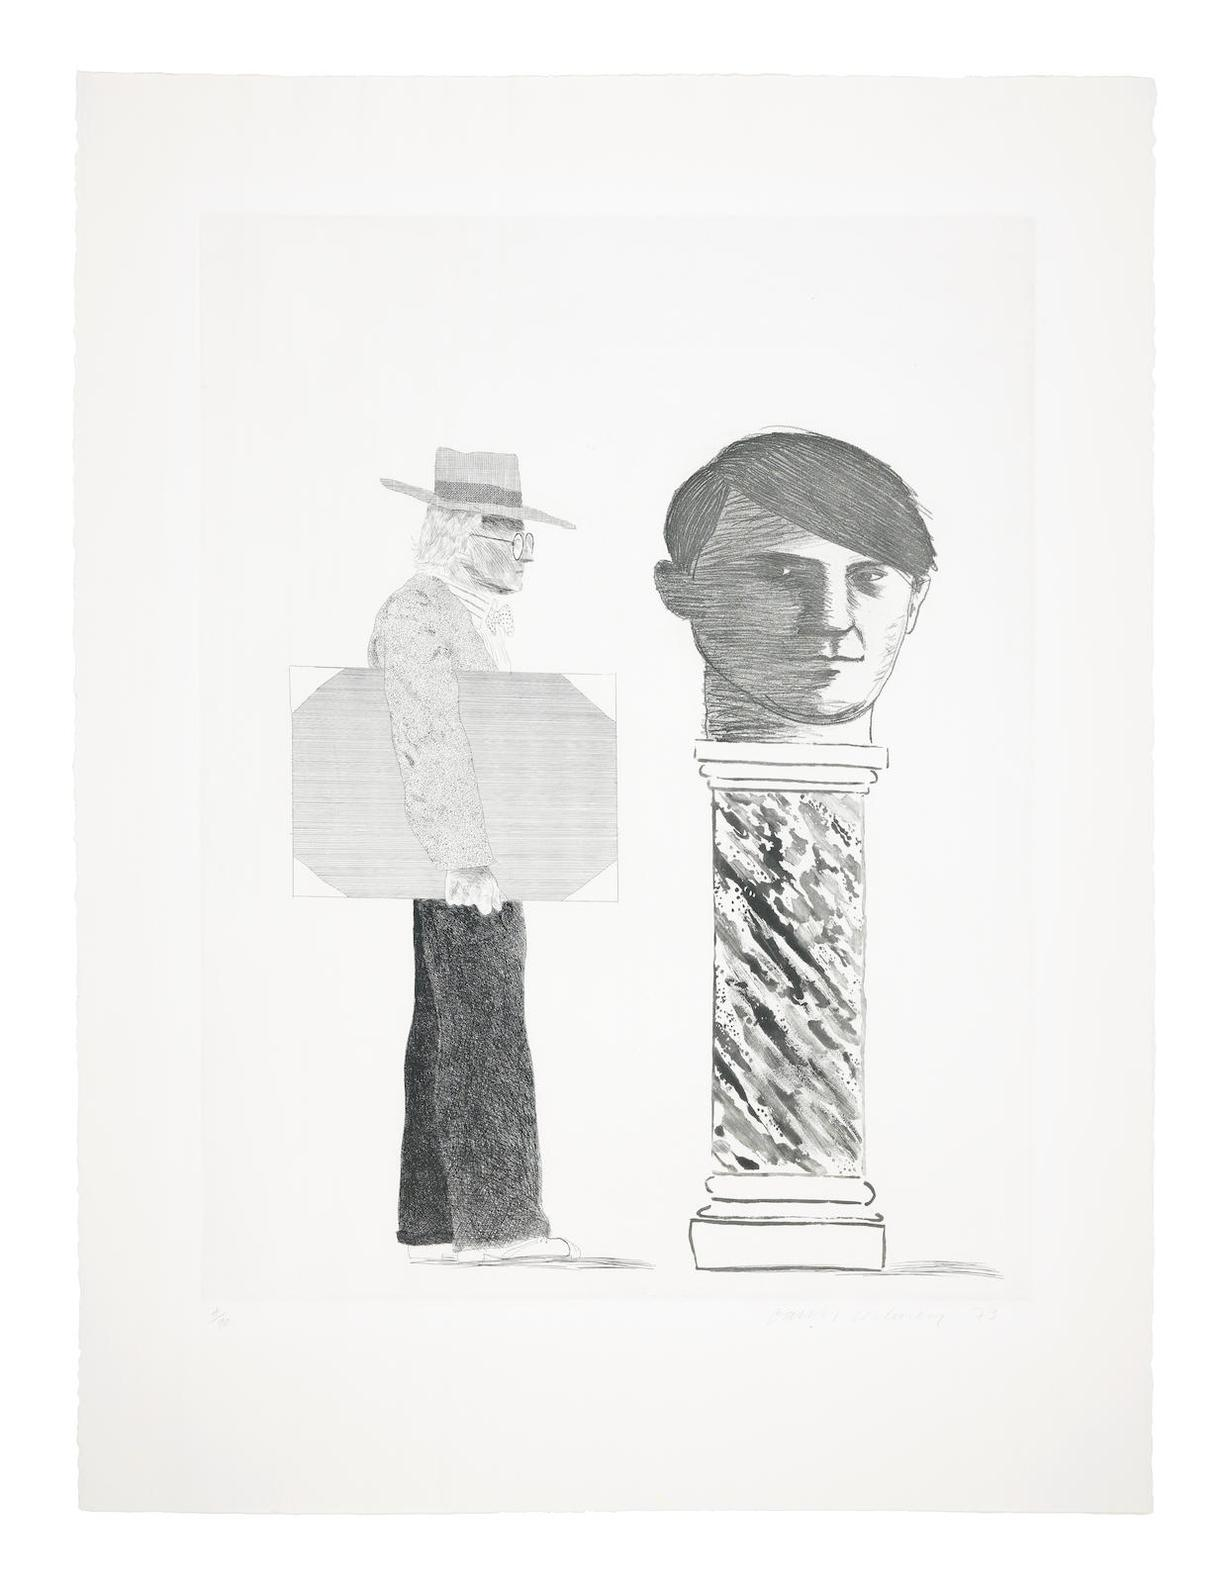 David Hockney-The Student: Homage To Picasso-1973